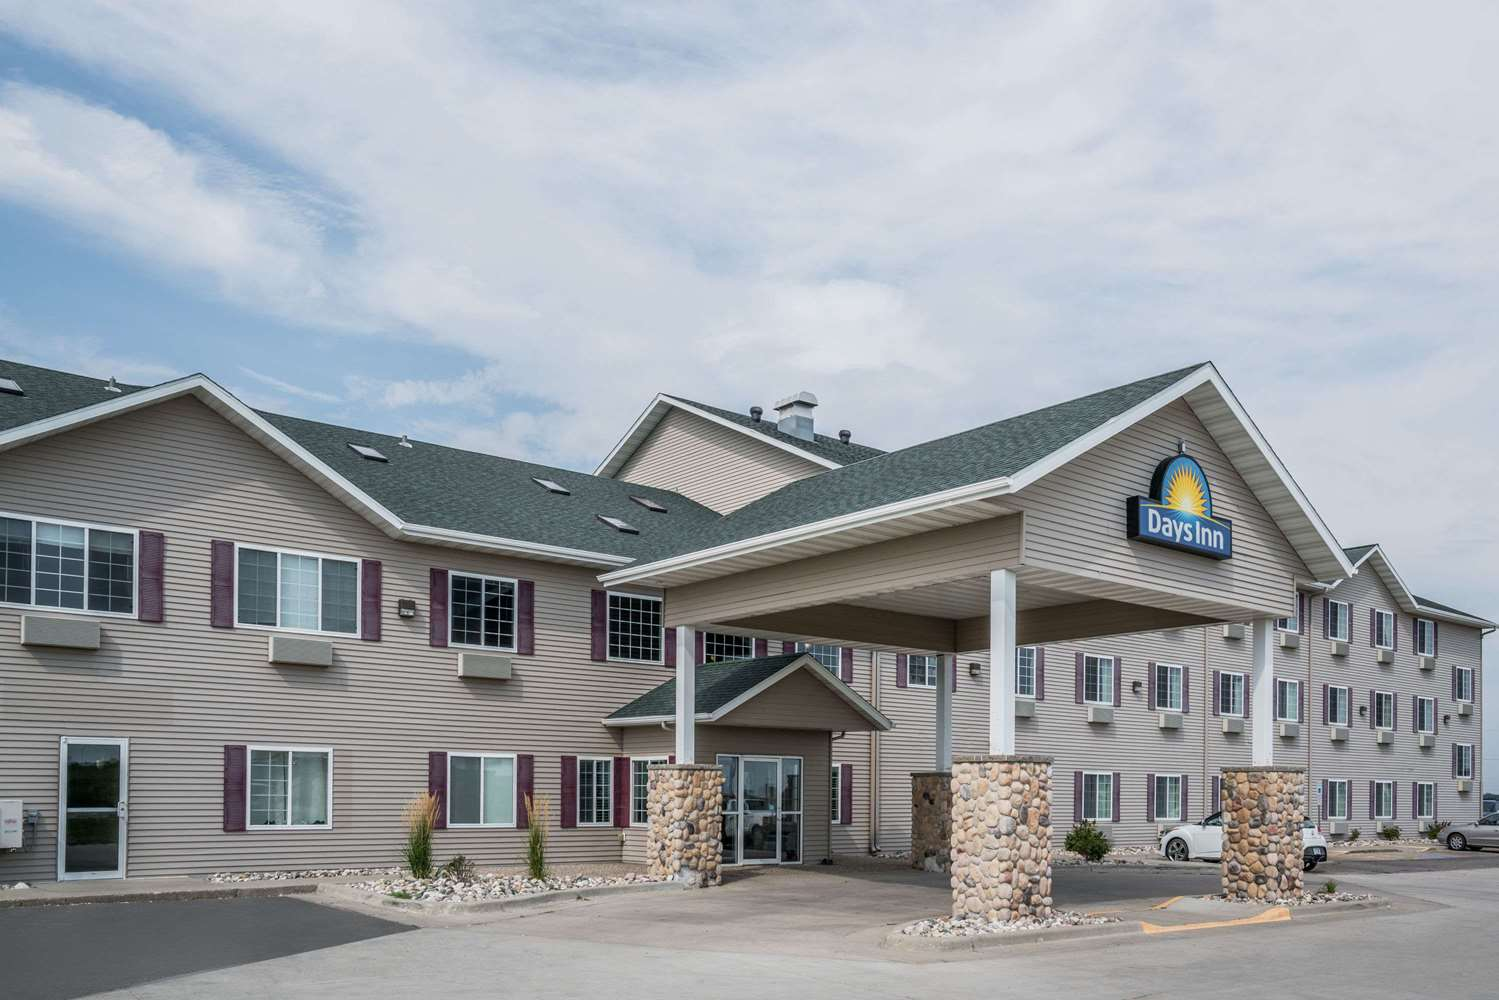 Days Inn Casselton